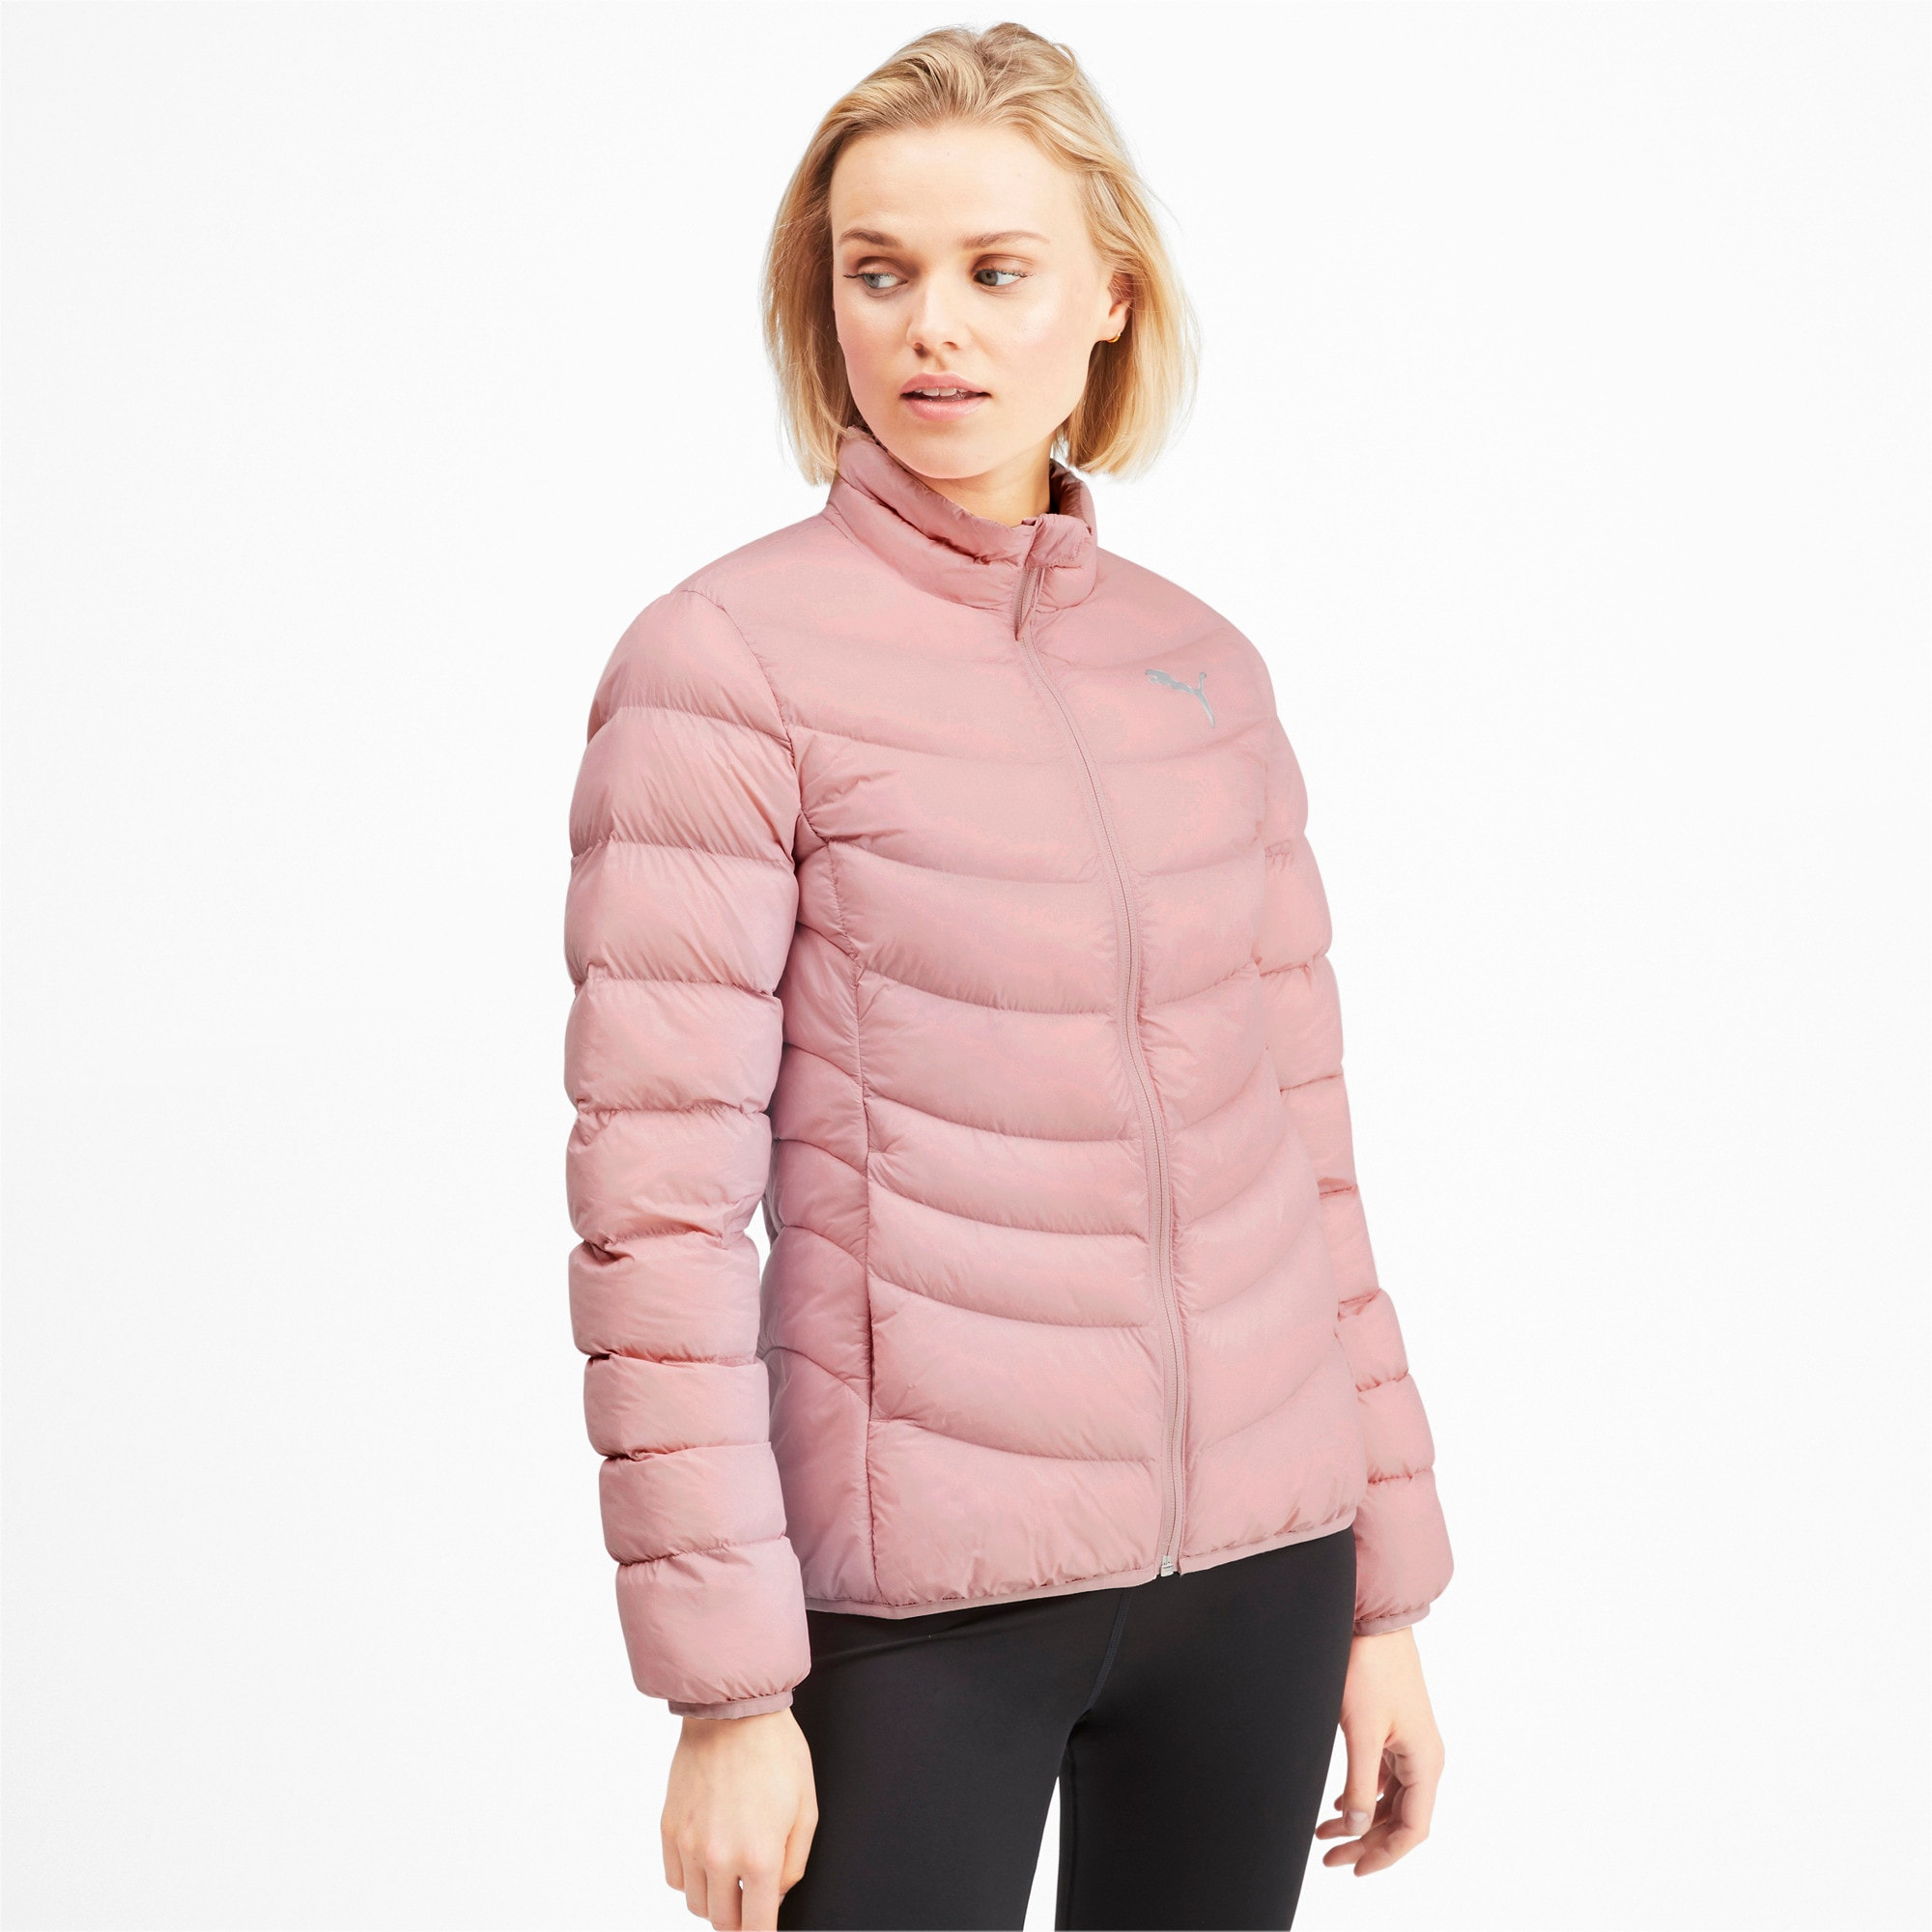 Thumbnail 1 of Ultralight warmCELL Women's Jacket, Bridal Rose, medium